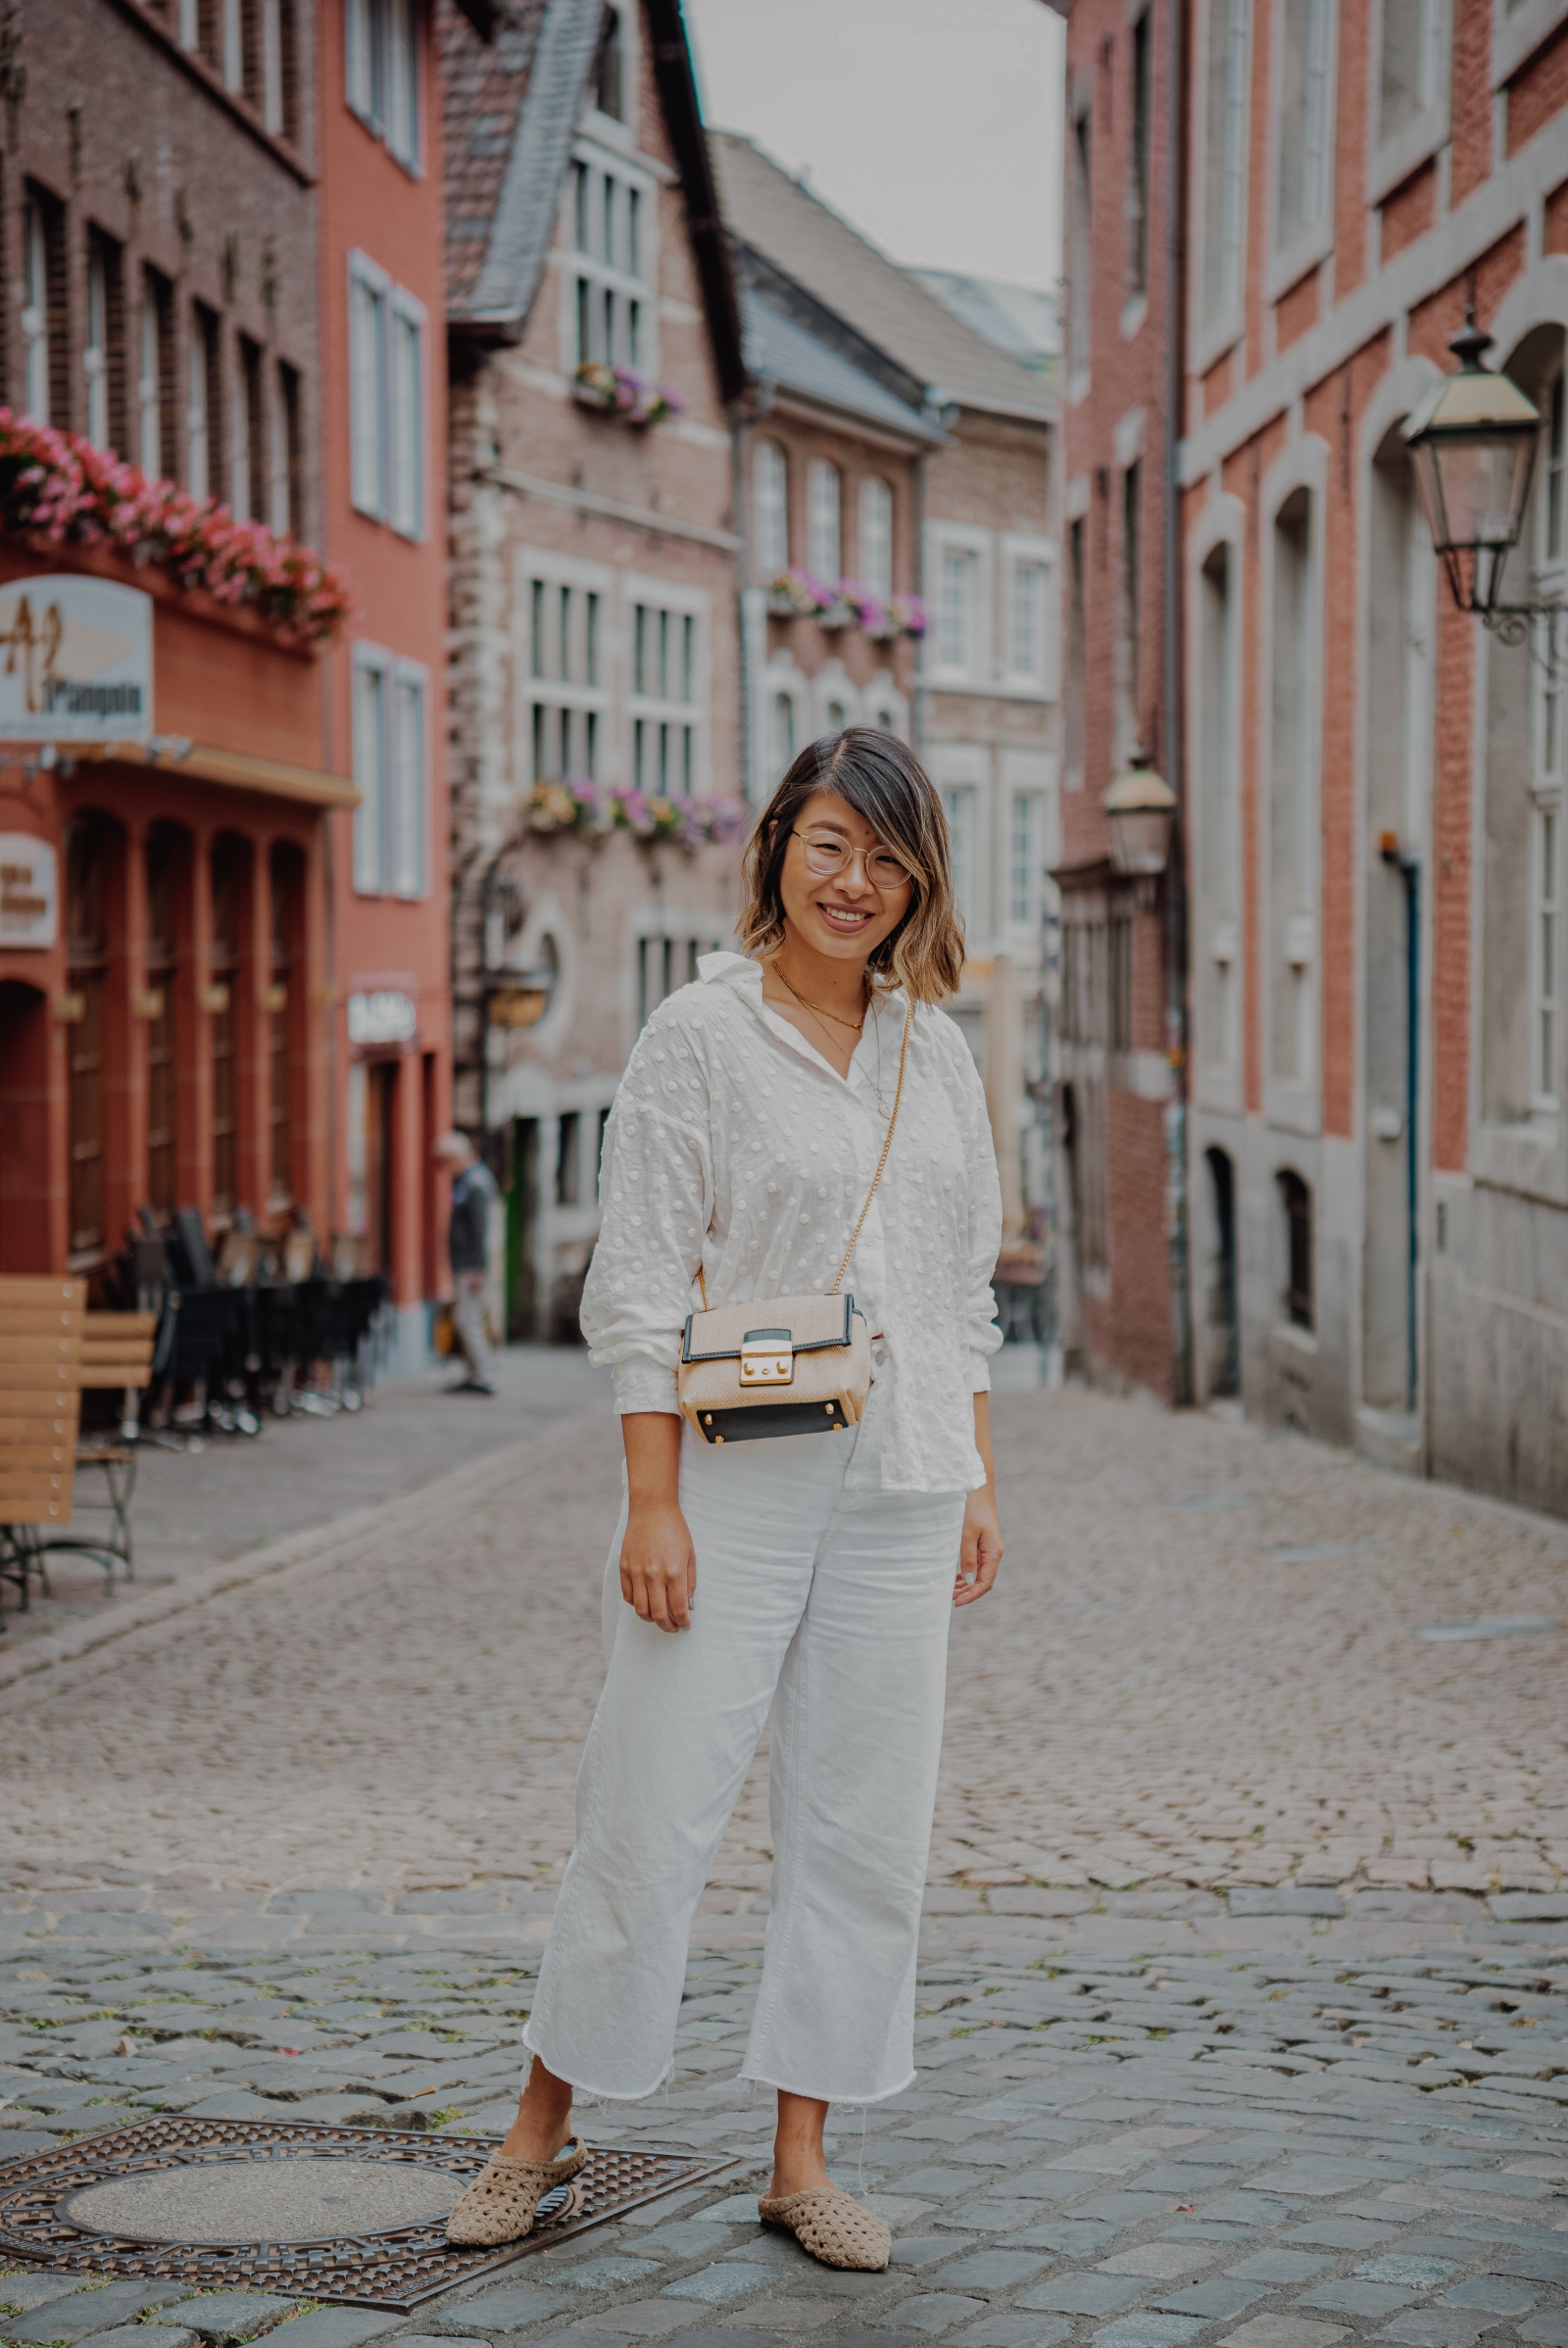 inhighfashionlaune | All White Outfit